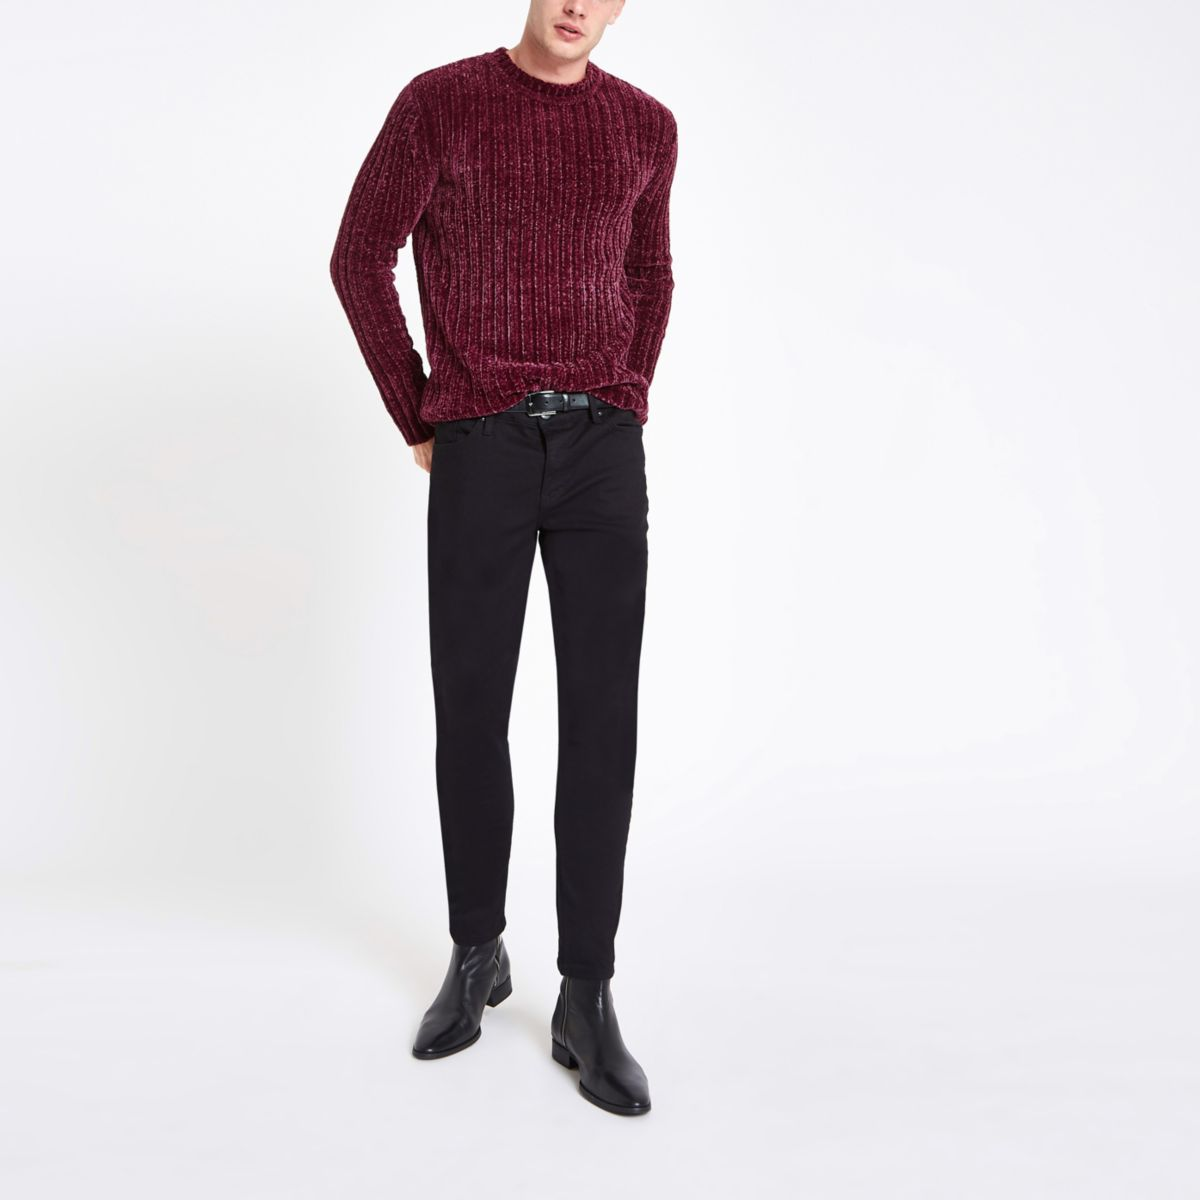 Dark red muscle chenille knit sweater